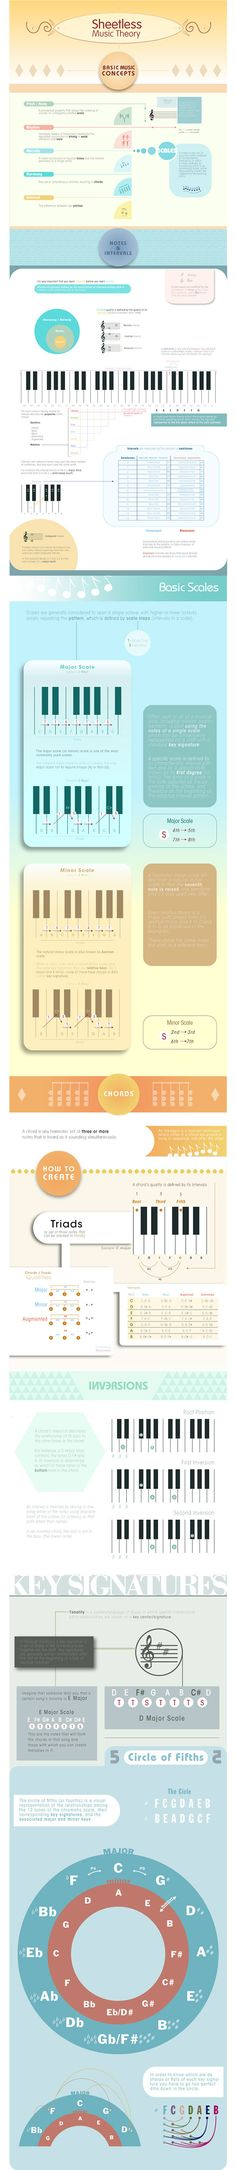 Sheetless Music Theory | INFOGRAPHICS on Behance